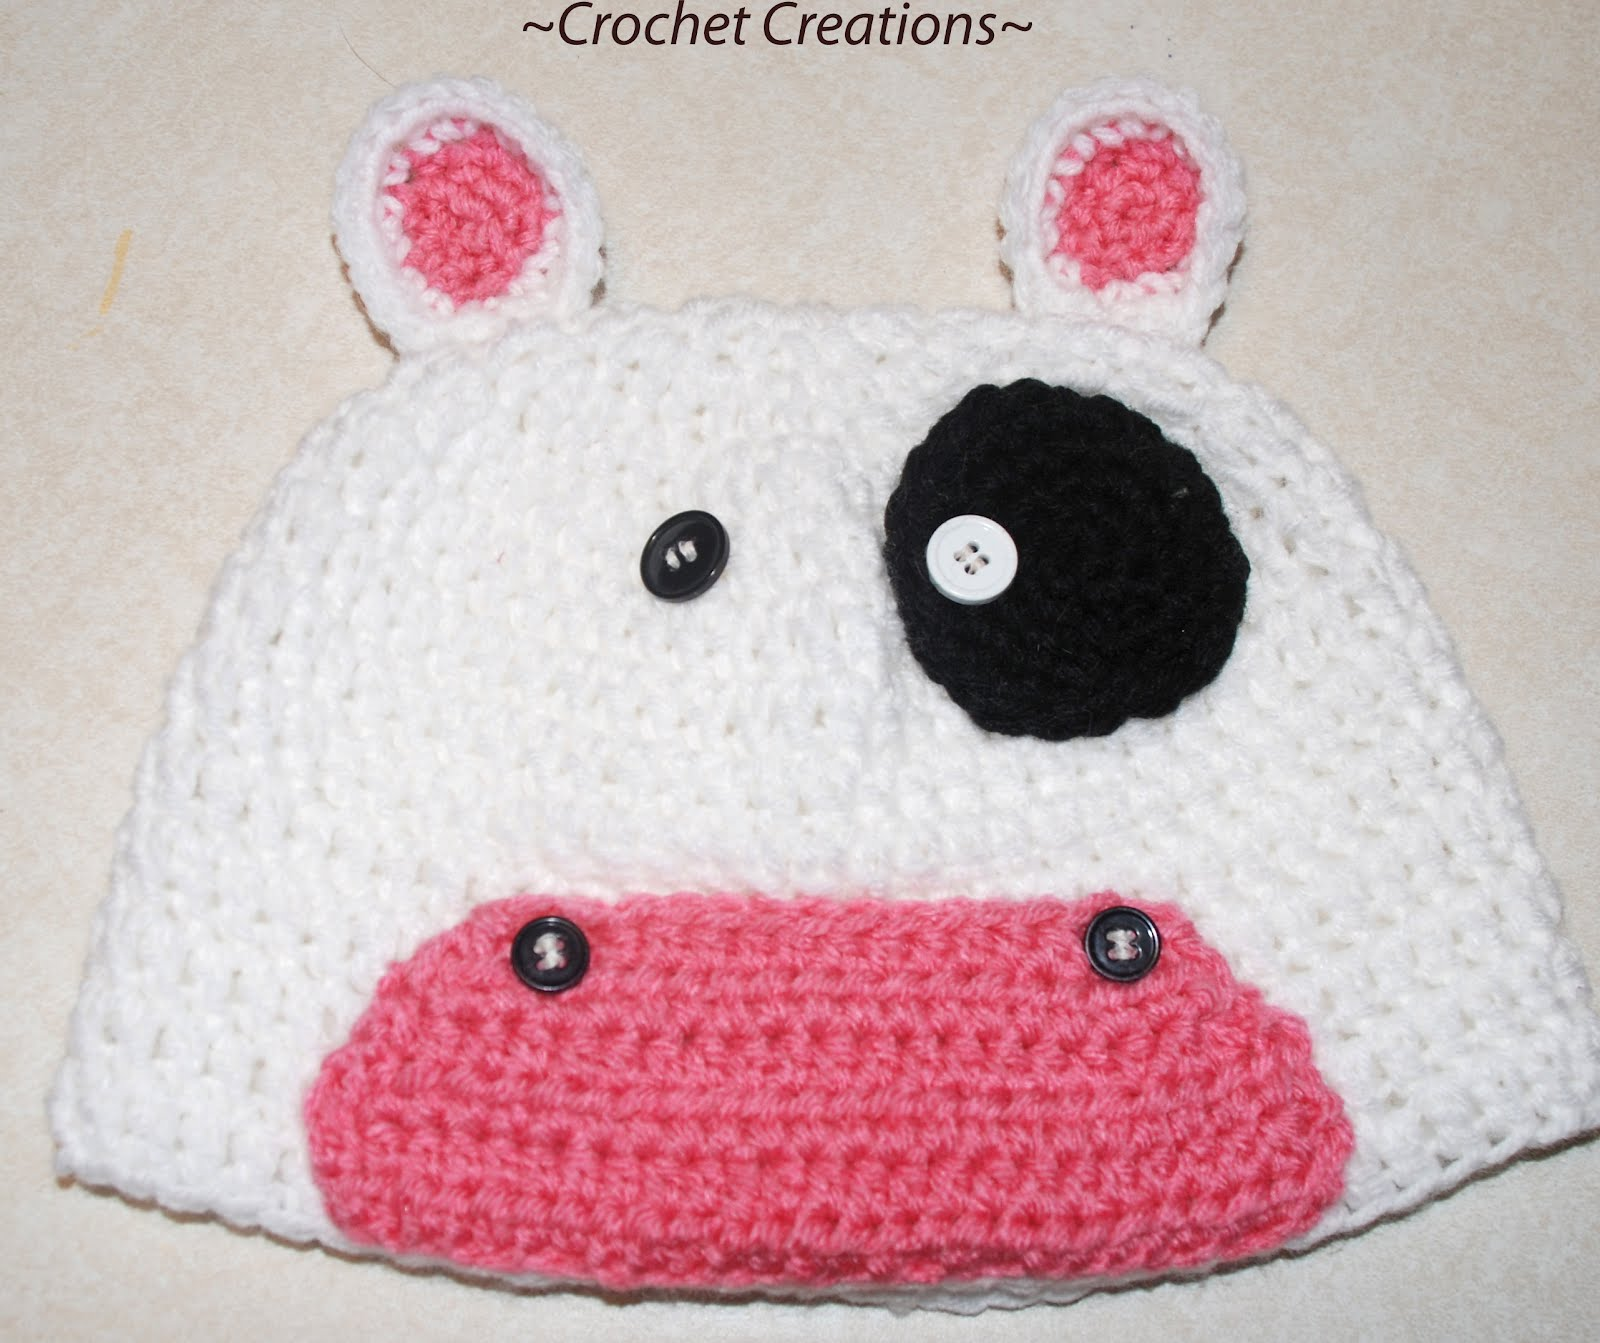 Crochet Pattern Central - Free Farm Animals Crochet Pattern Link